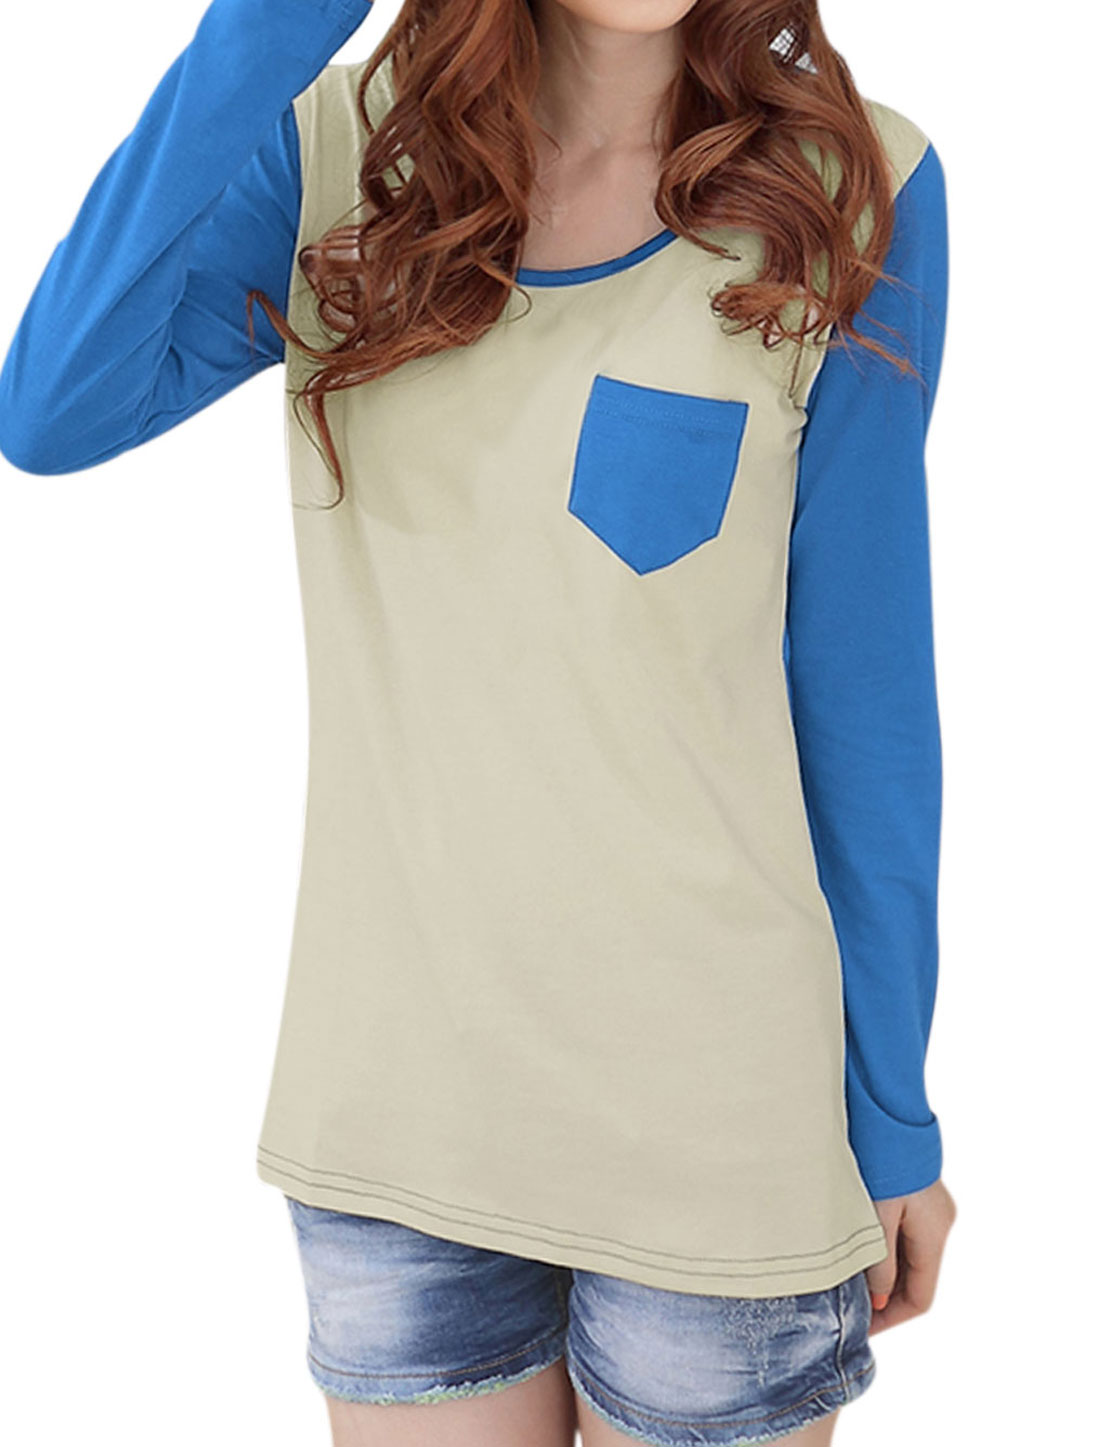 Women Long Sleeve Contrast Color Single Chest Pocket T-shirt Blue S